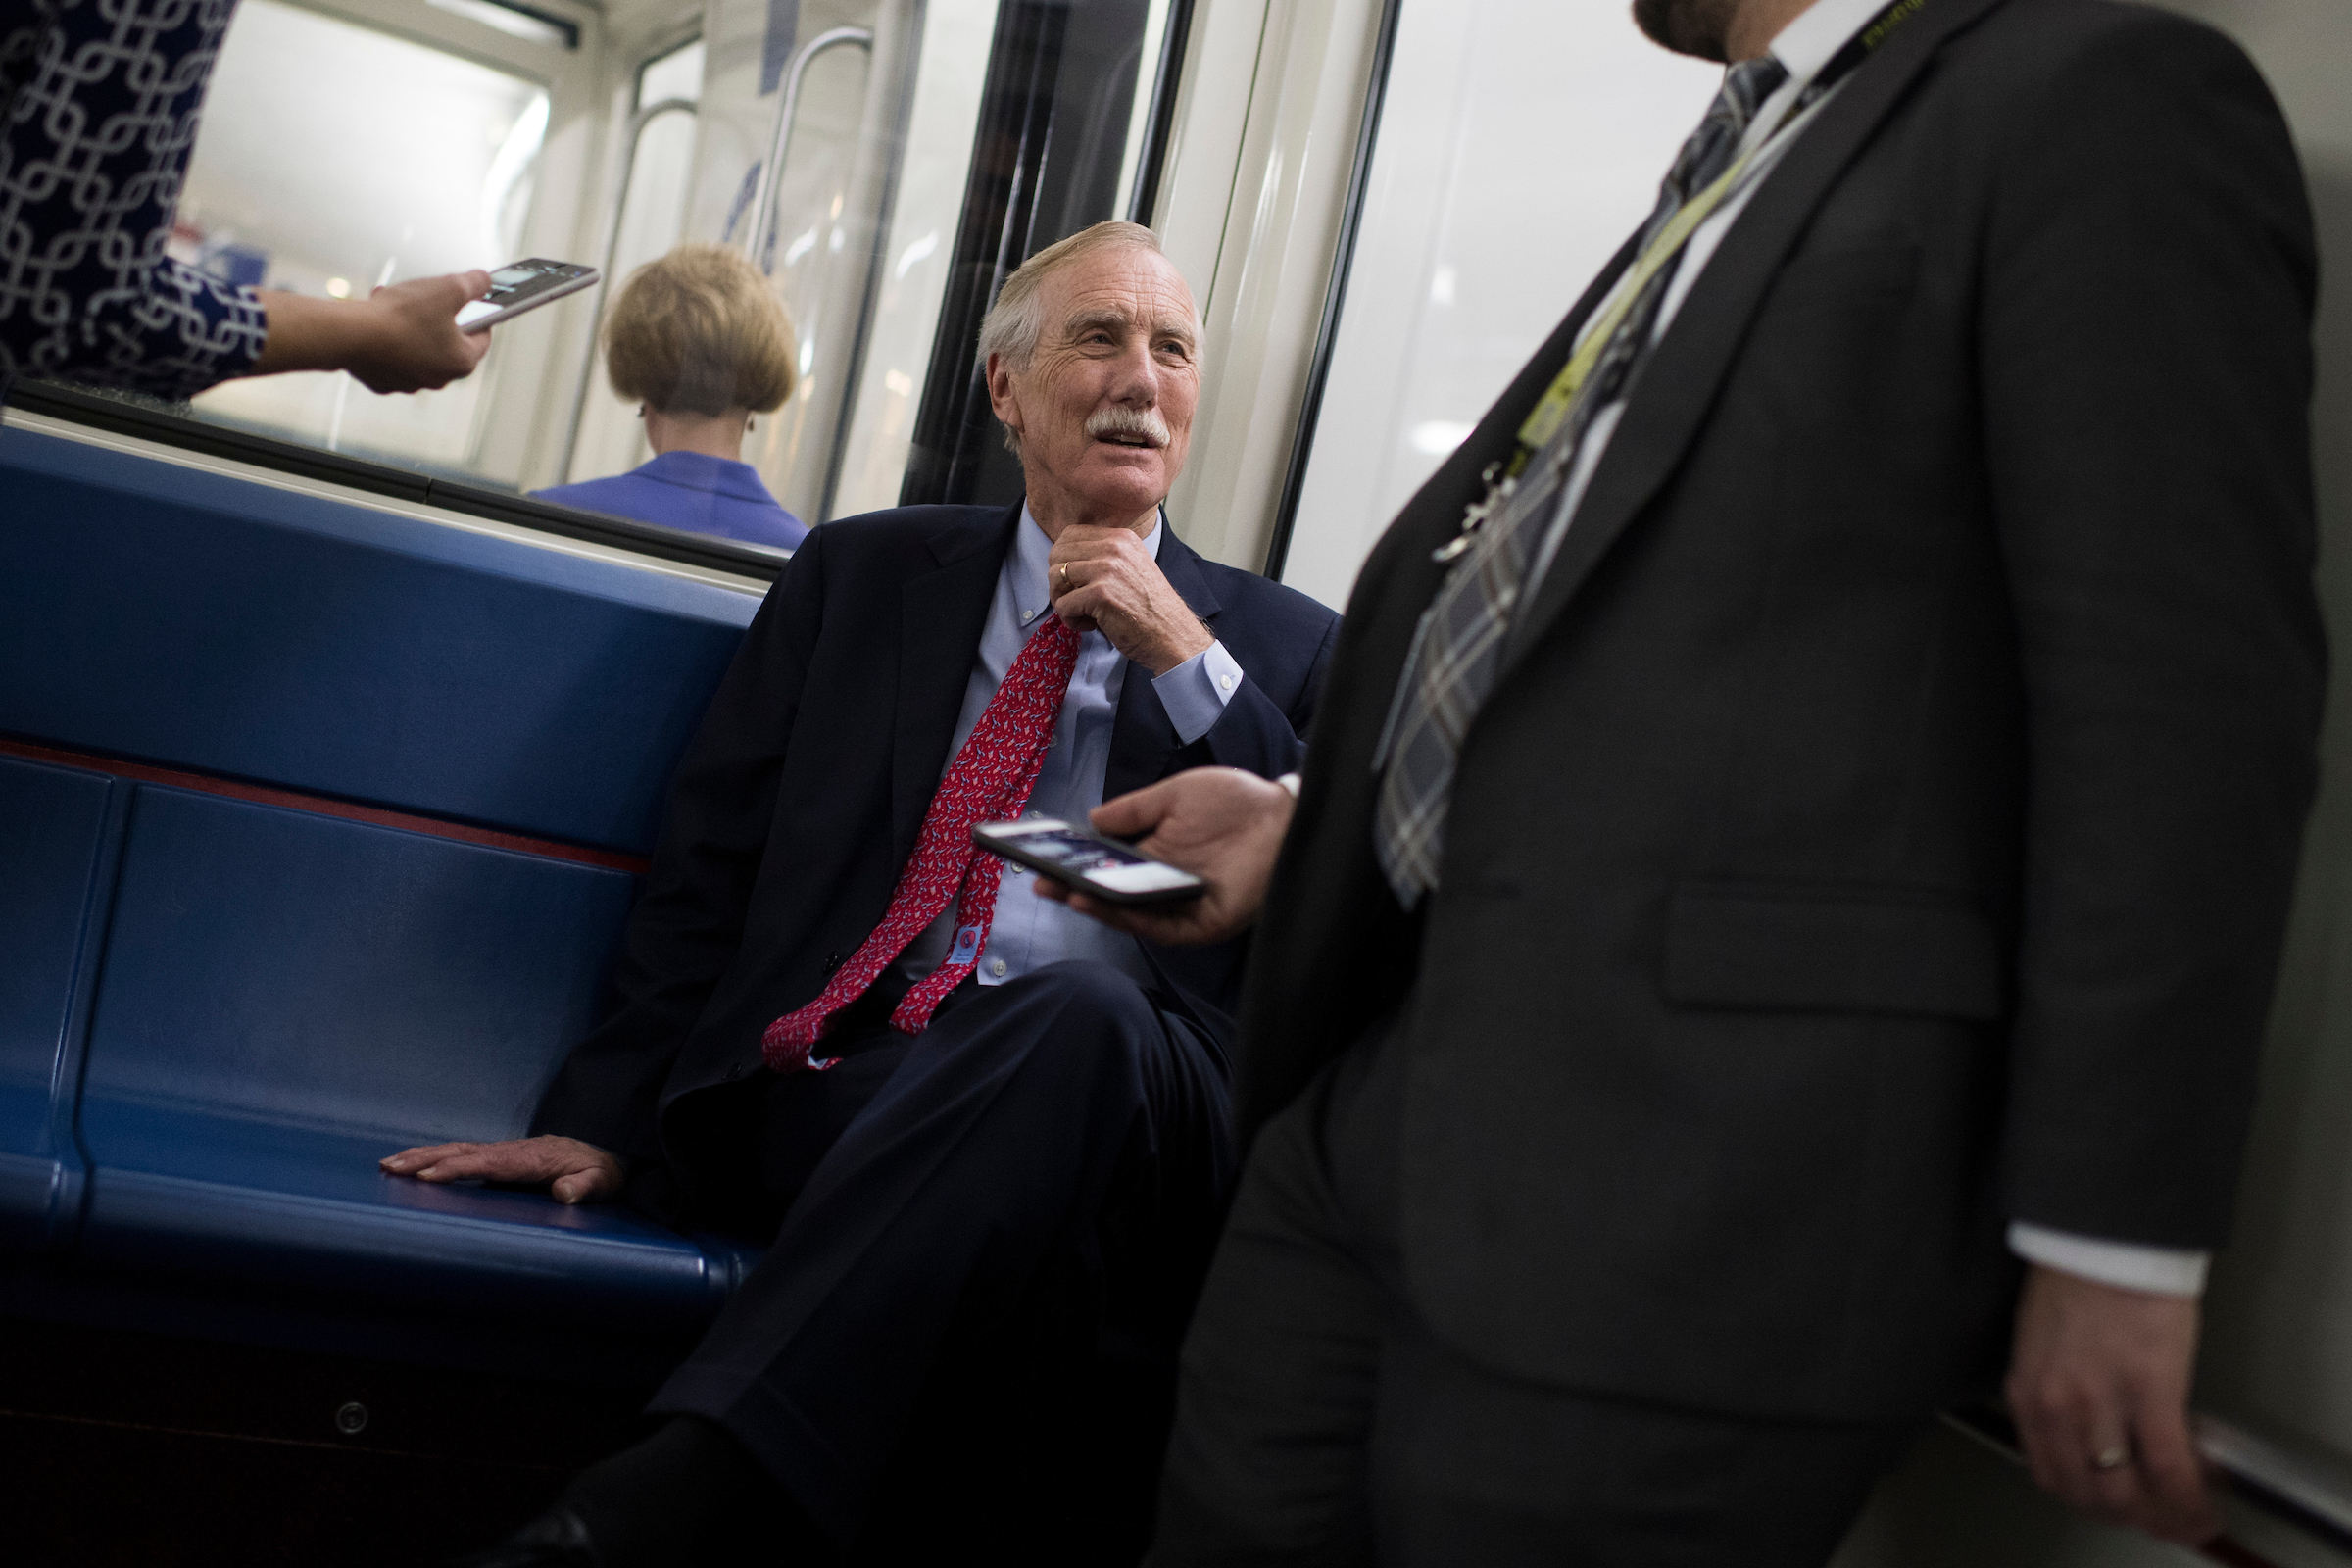 Sen. Angus King, I-Maine, talks with reporters on the Senate subway after the Senate Policy luncheons in the Capitol on Tuesday. (Tom Williams/CQ Roll Call)